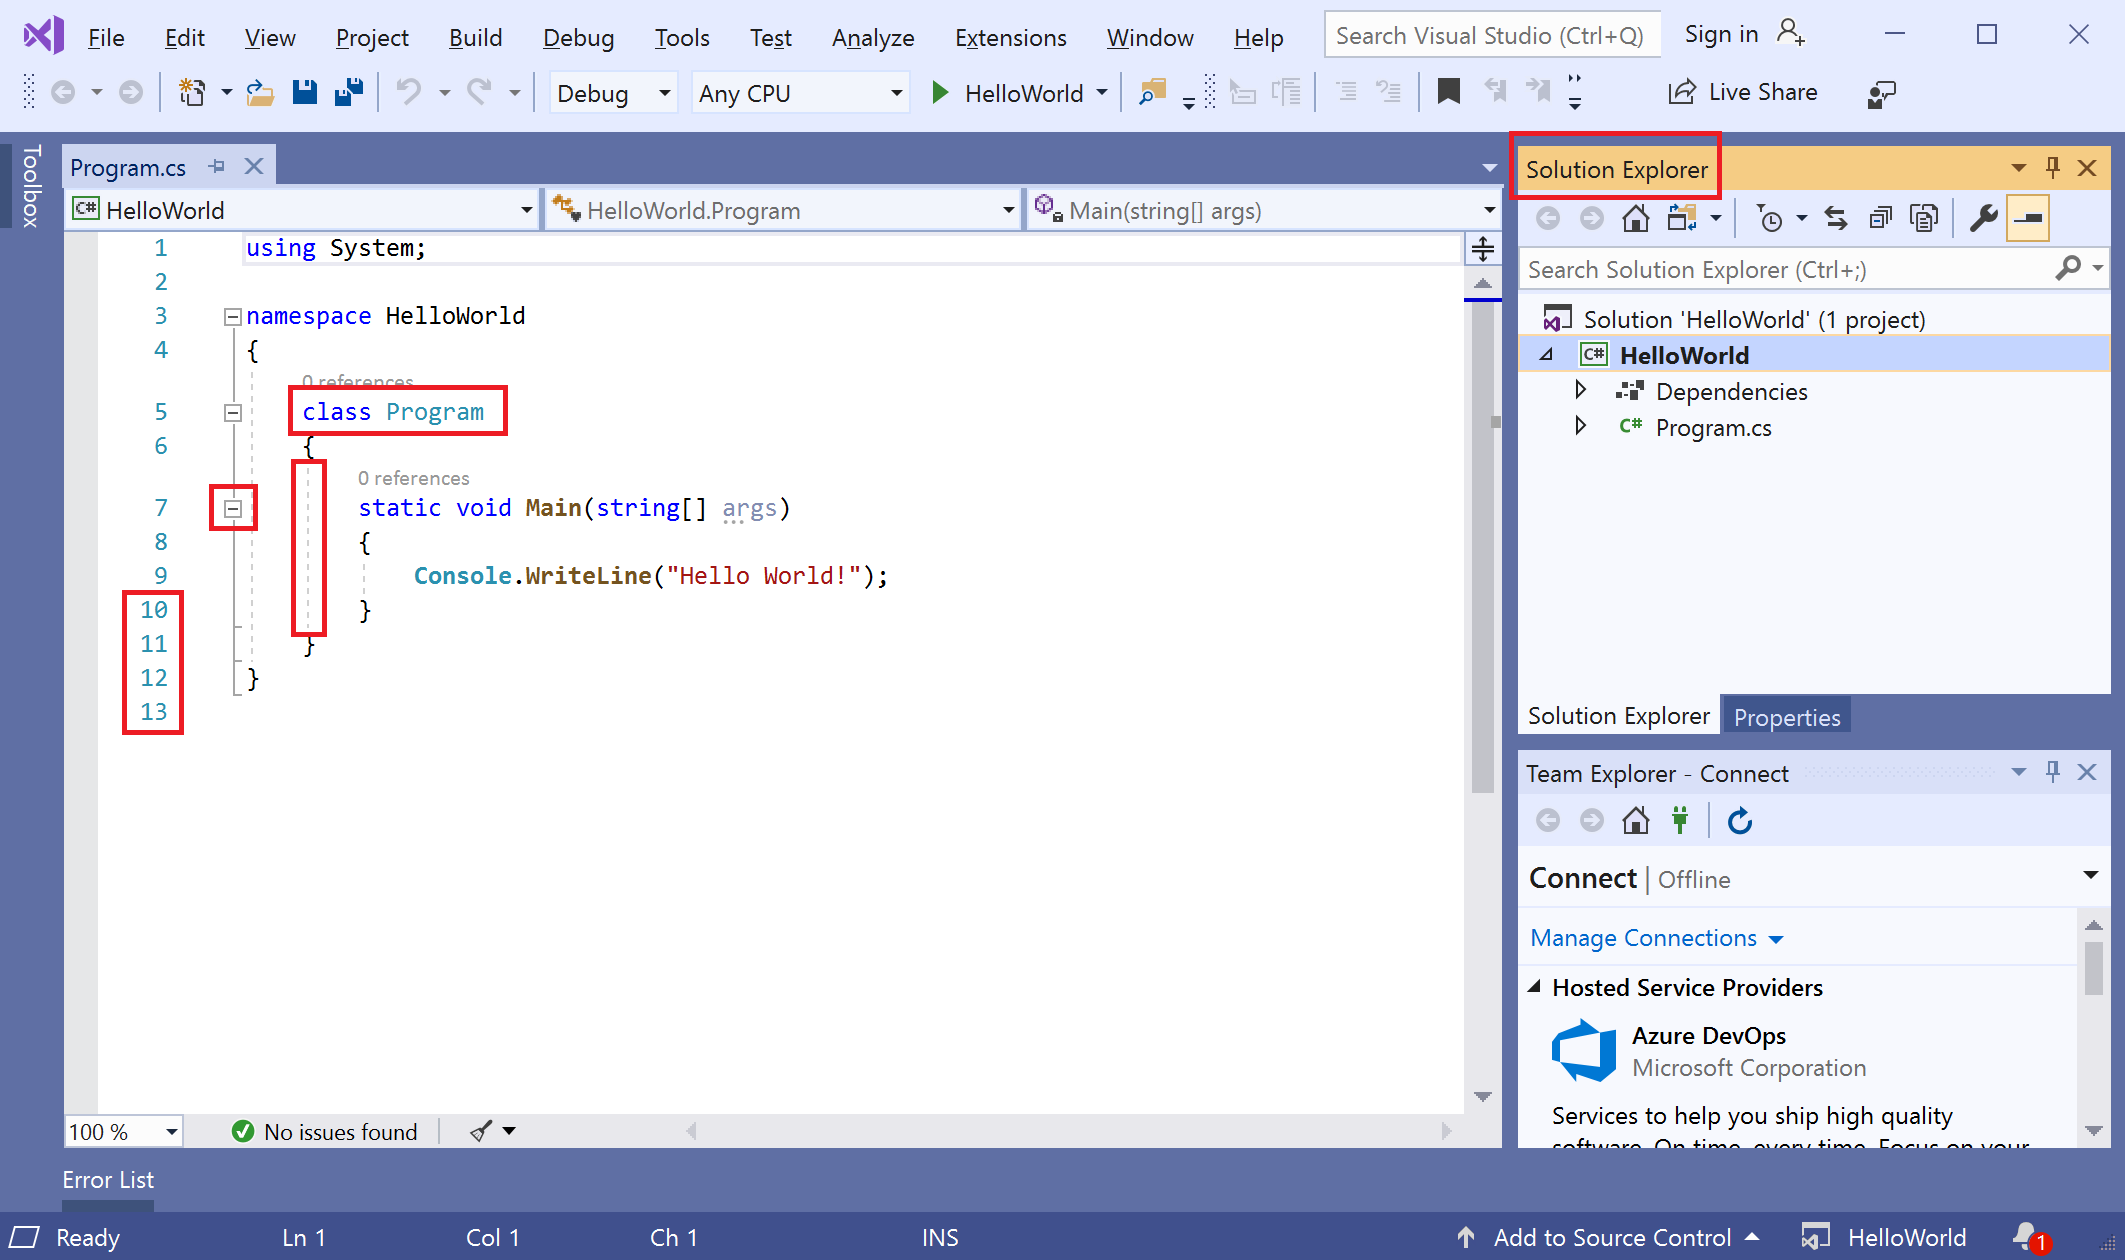 Overview of Visual Studio.